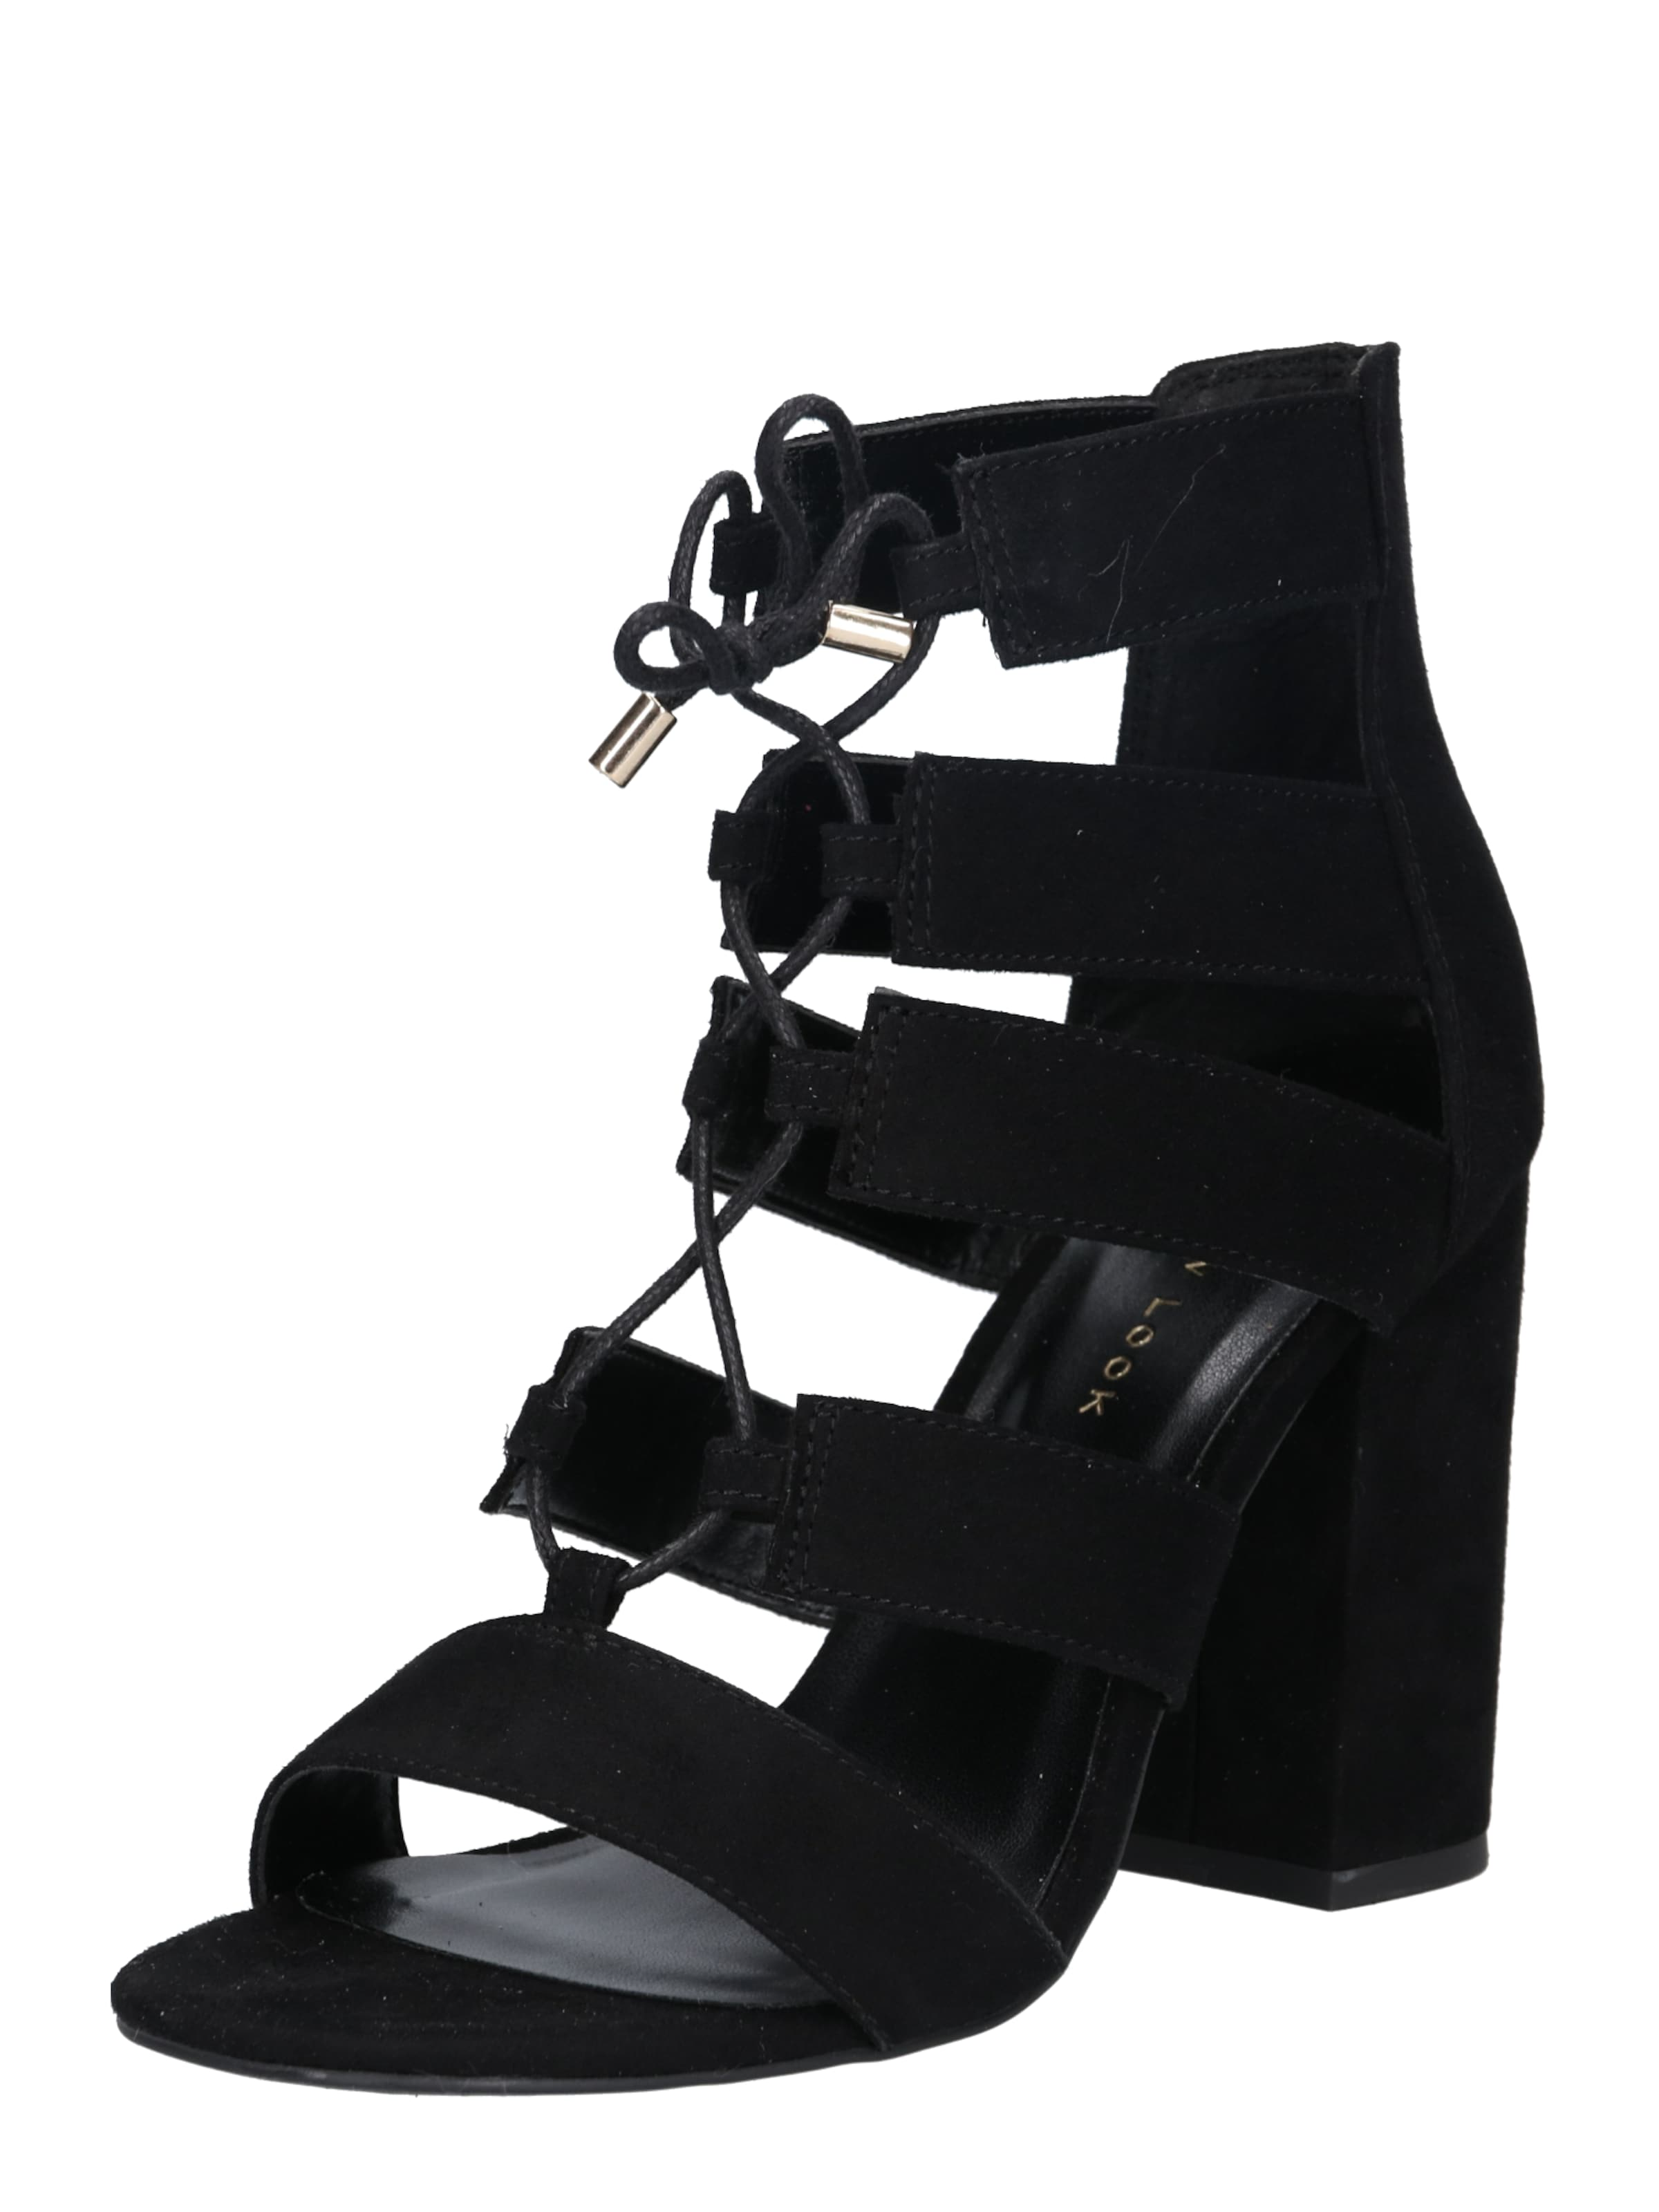 In New Look Schwarz Heels High CBoxWrde